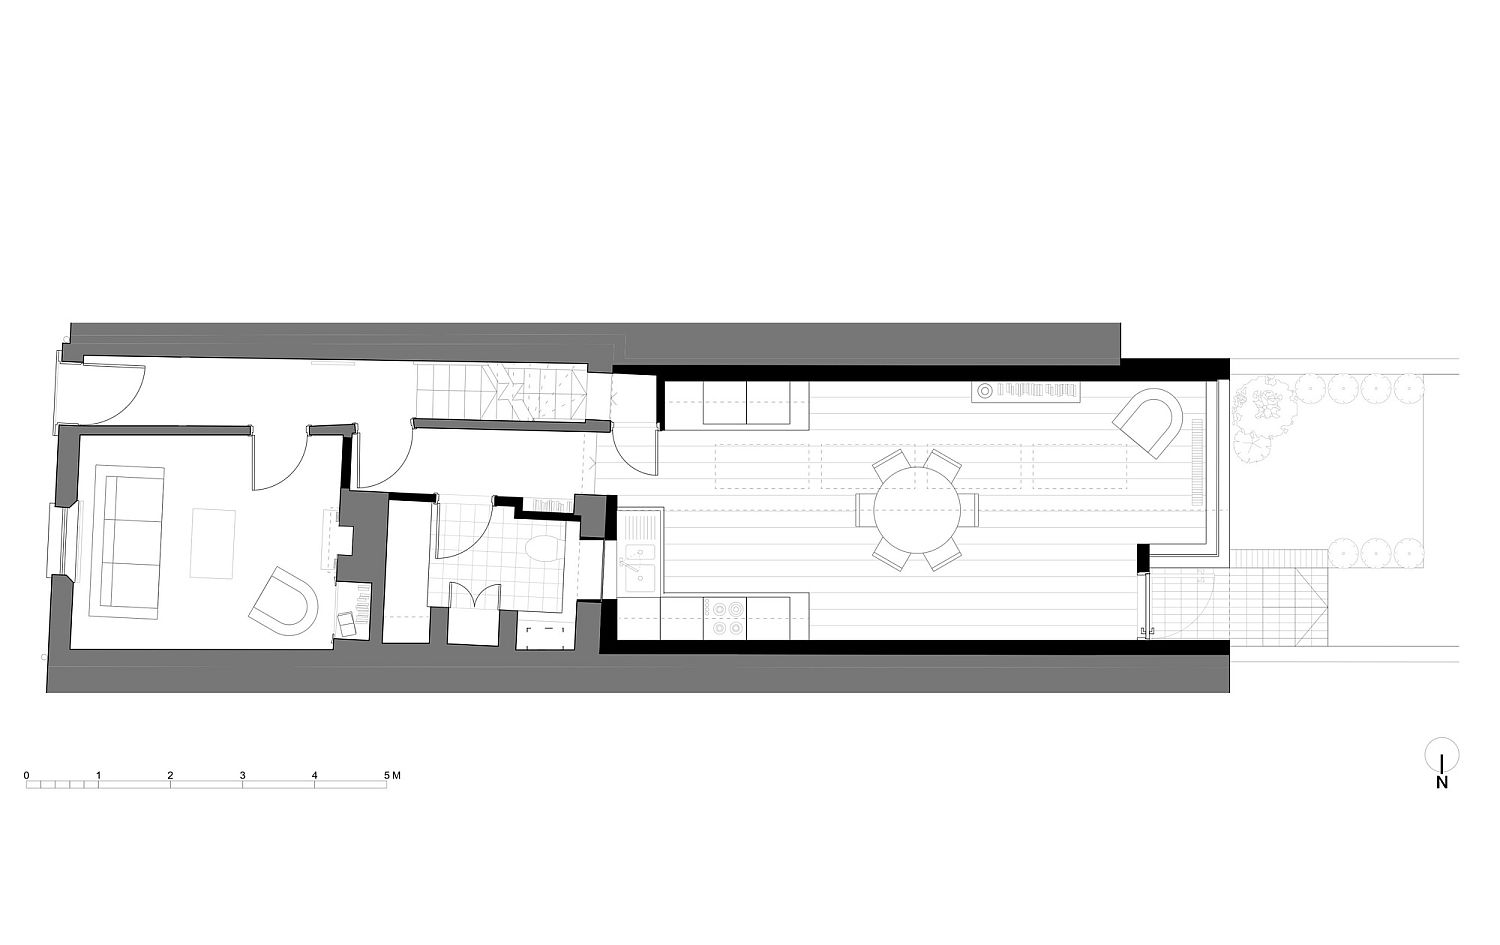 Revamped-floor-plan-of-the-ground-floor